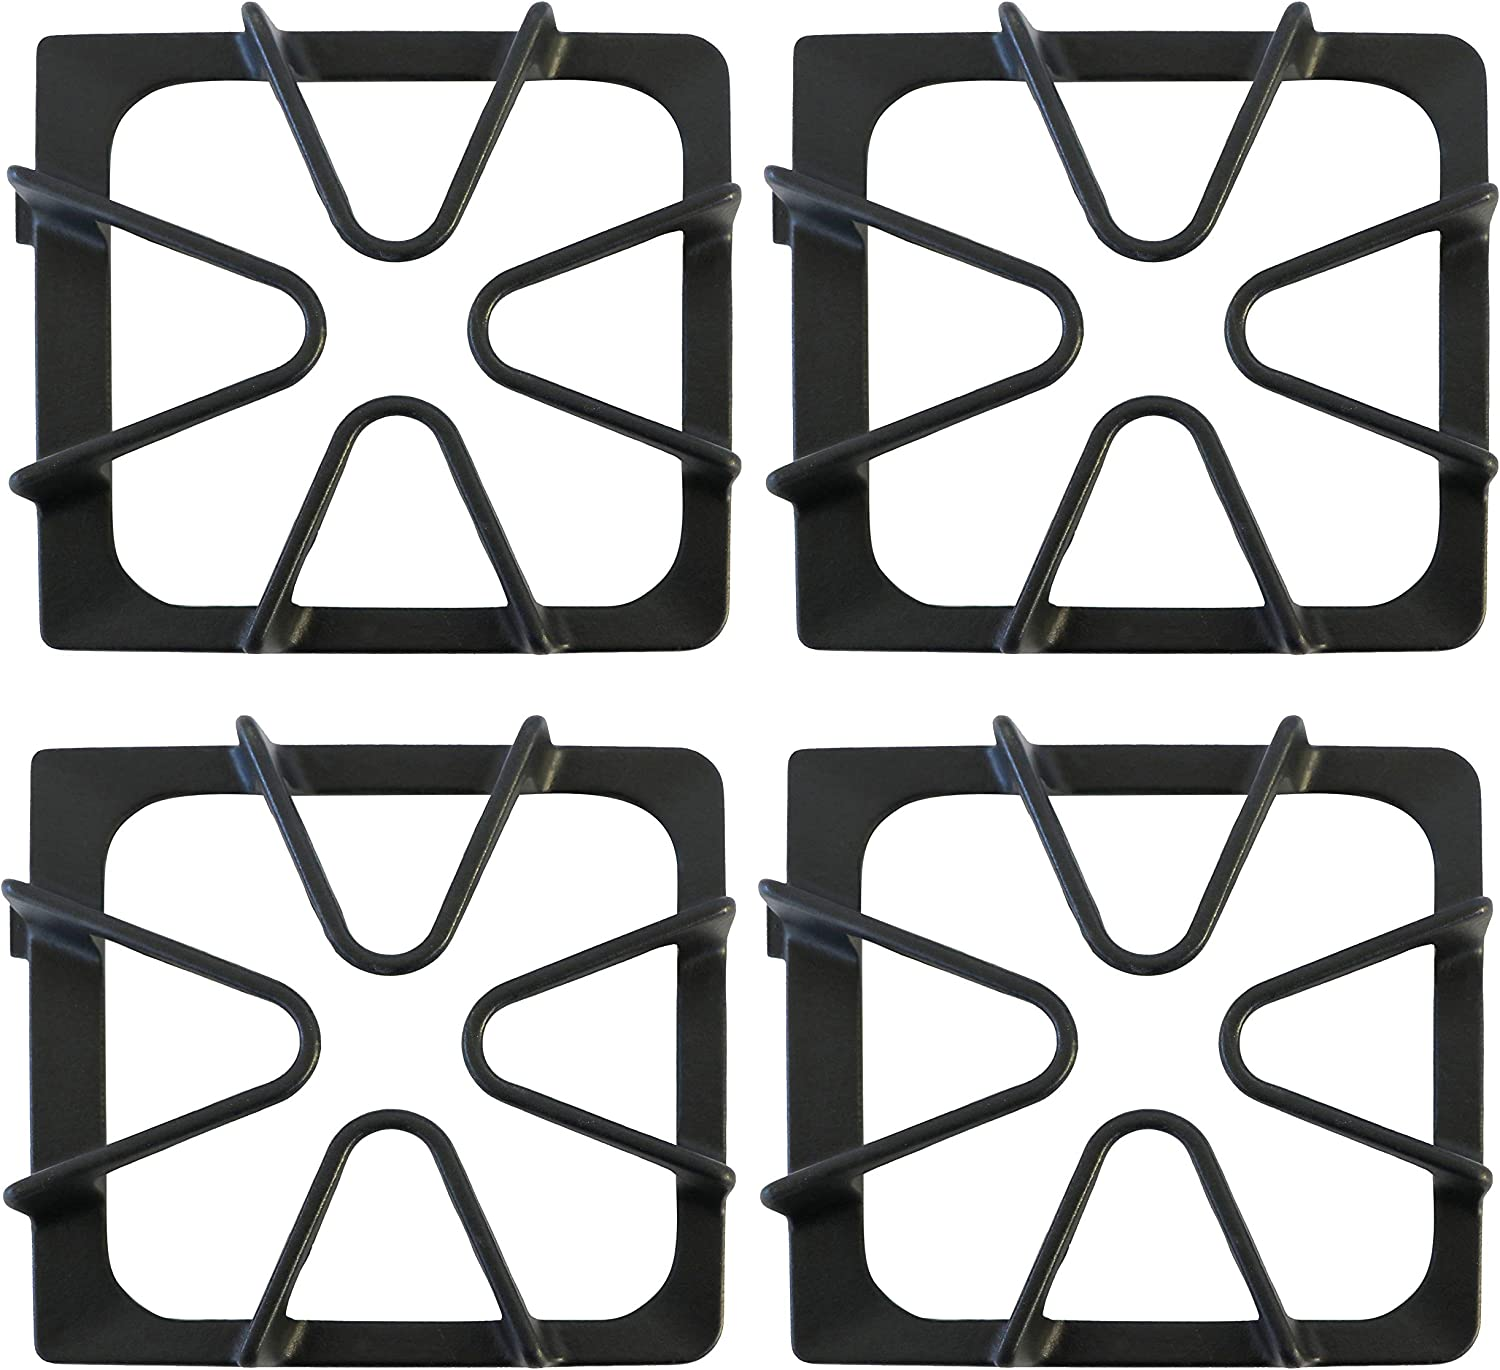 KITCHEN BASICS 101 Replacement Oven Stove Range Burner Grates Compatible with Whirlpool Stoves 8522858, WP8522858 8053456, WP8053456, WPW10447925, 4 Pack, Matte Black